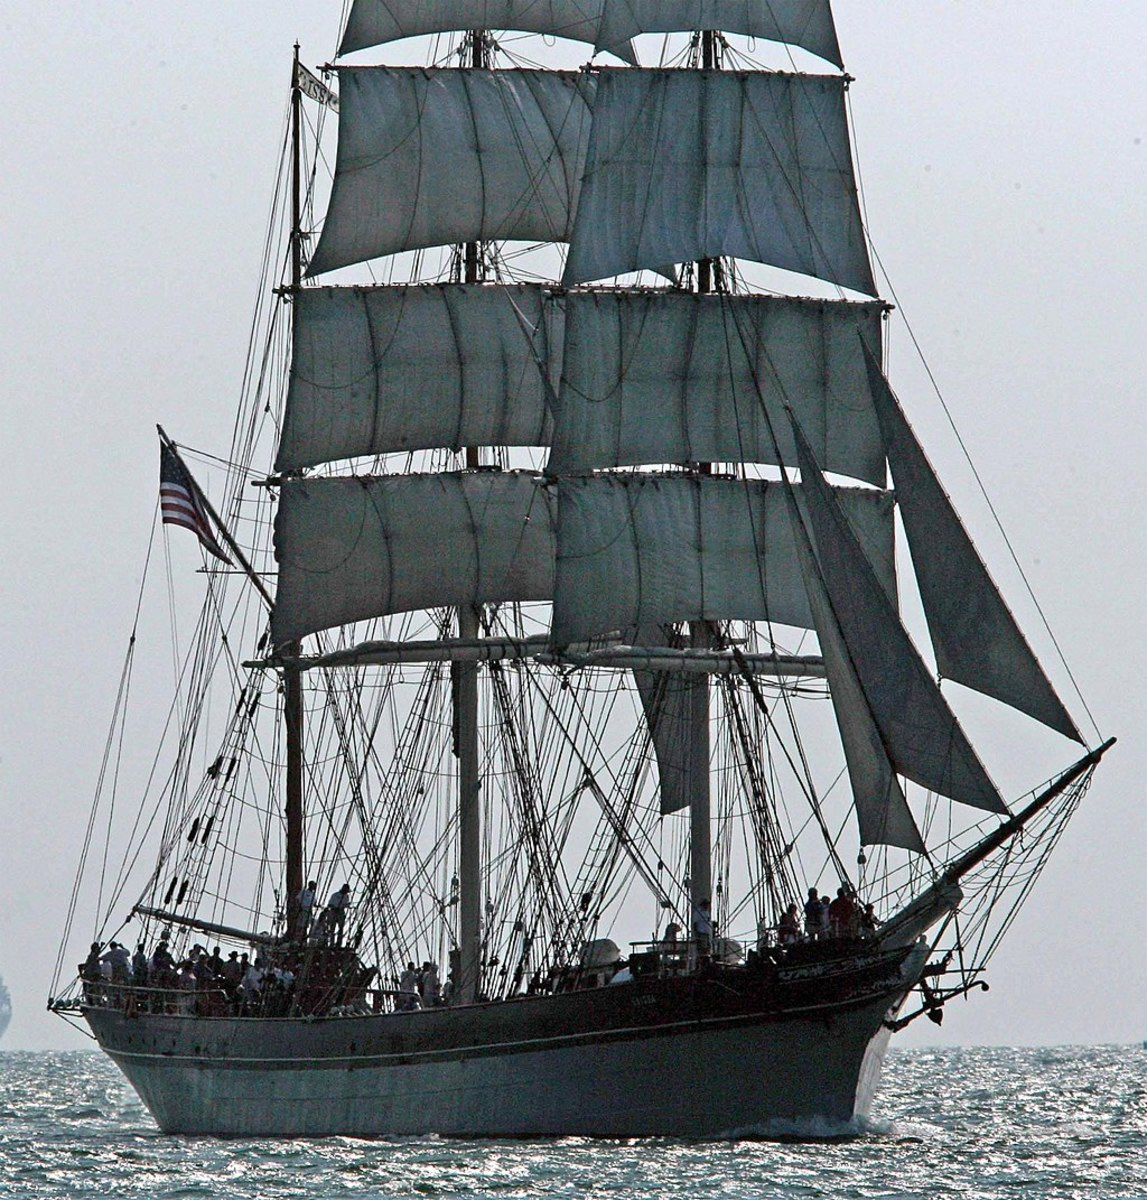 The tall ship Elissa, which has sailed in three centuries, sails up the channel into Port Galveston, Texas.